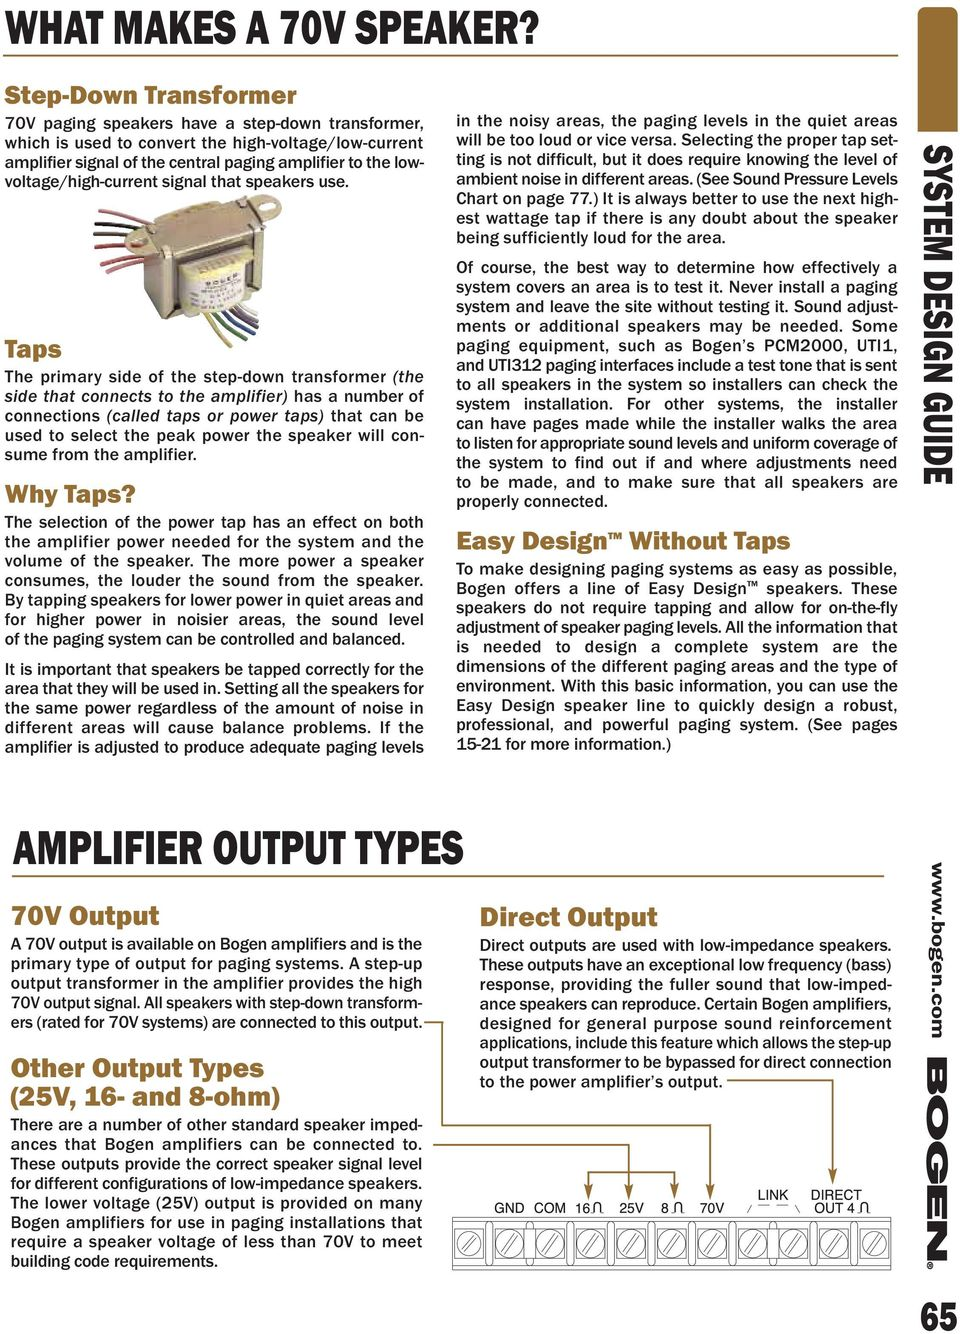 Bogen 70v Speaker Wiring Diagram System Design Guide Pdf Lowvoltage High Current Signal That Speakers Use